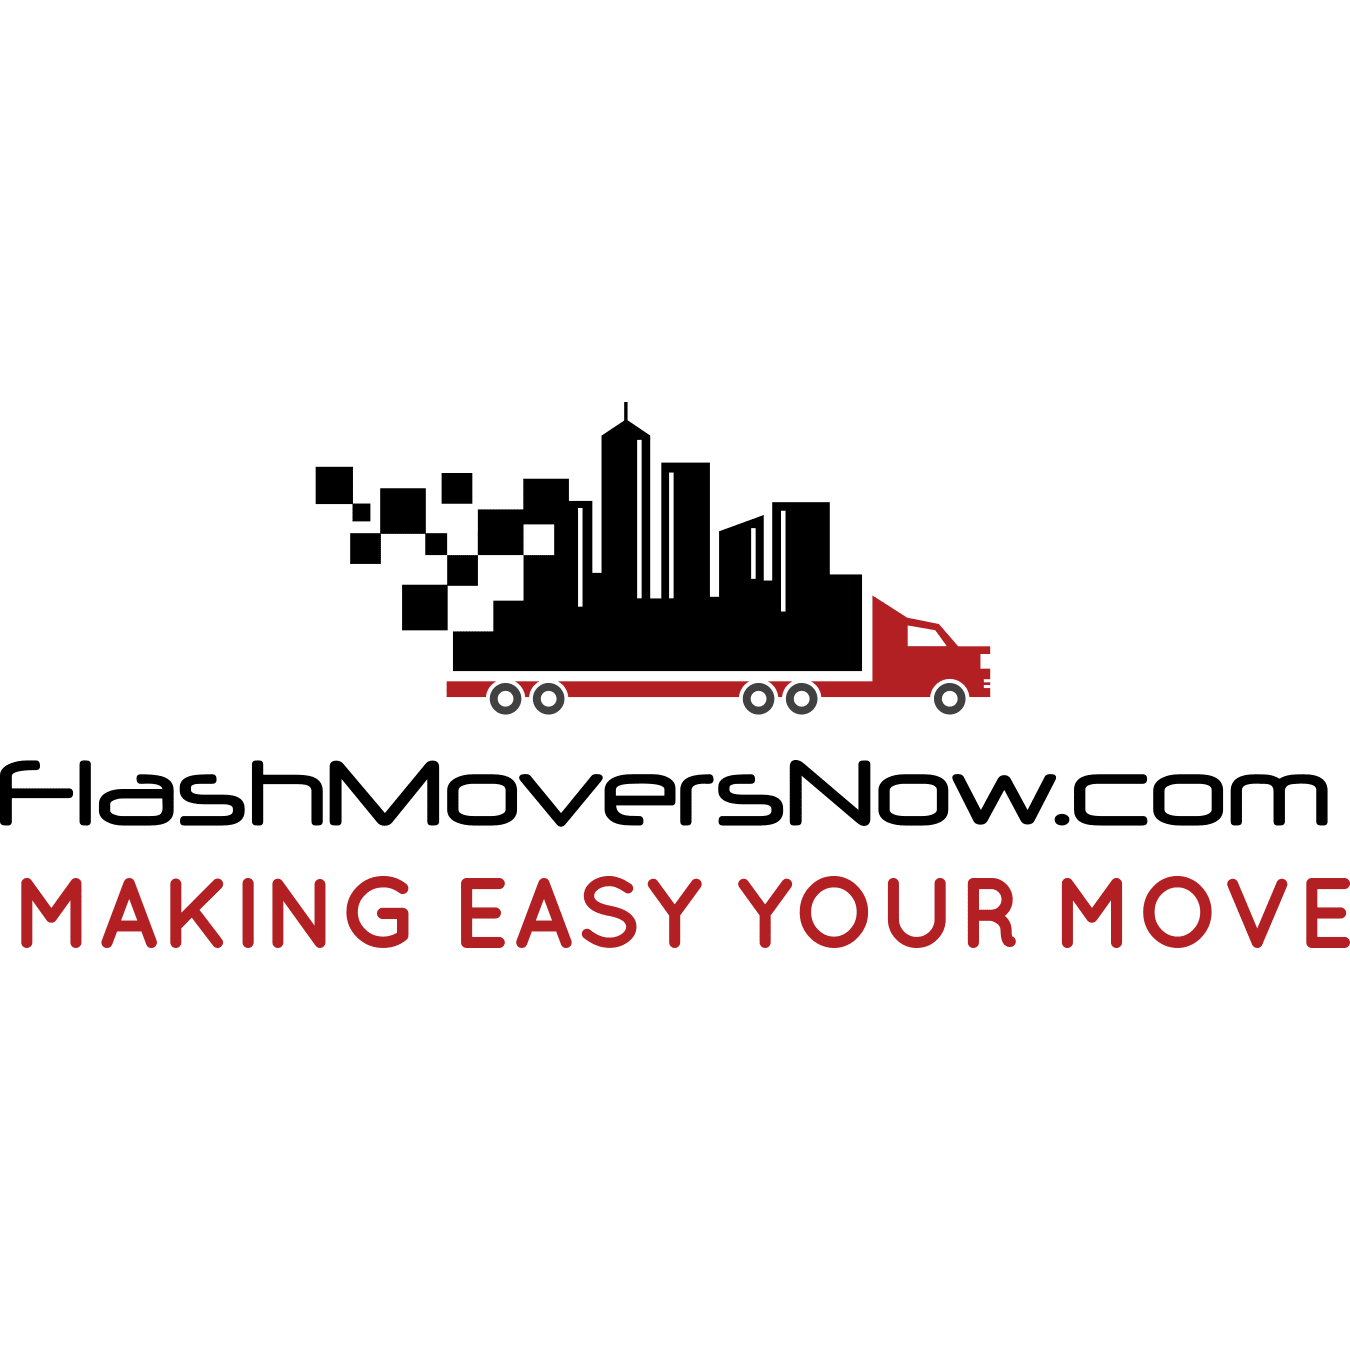 Flash Movers - Charlotte, NC - Marinas & Storage